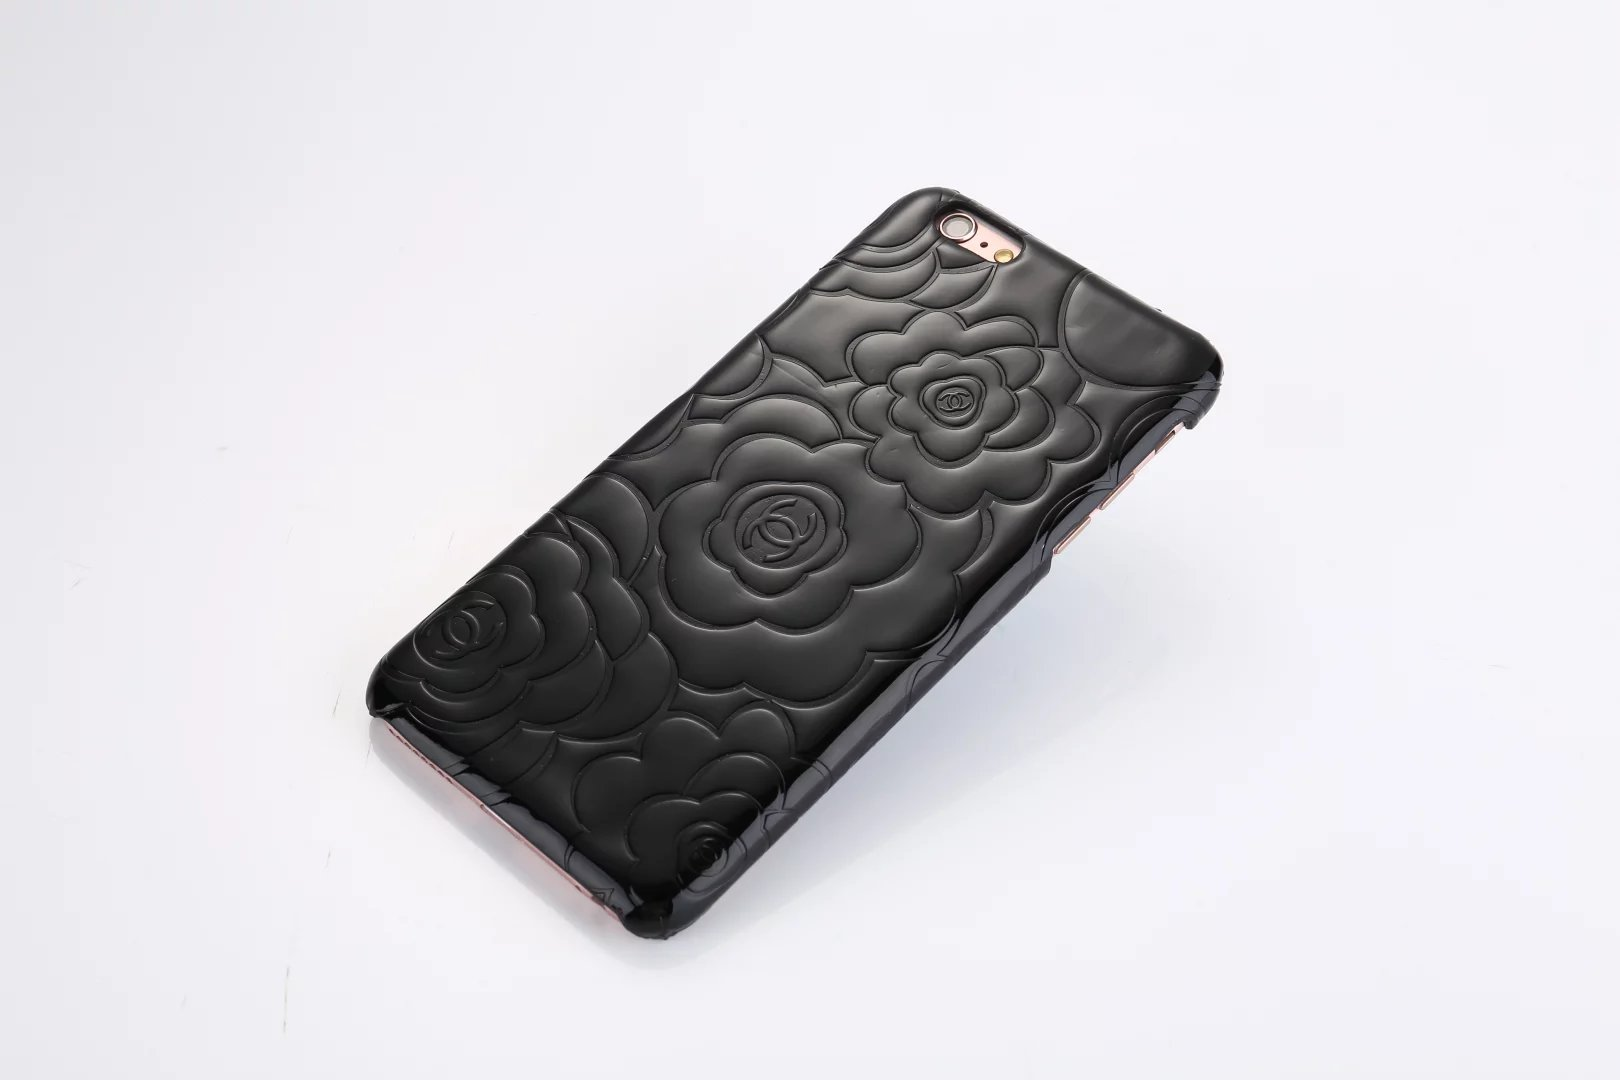 iphone 8 Plus case with screen cover phone cases iphone 8 Plus Chanel iphone 8 Plus case iphone 8 Plus cases leather black phone case iphone with case designer phone case cooler master elite 661 create your own iPhone 8 Plus case